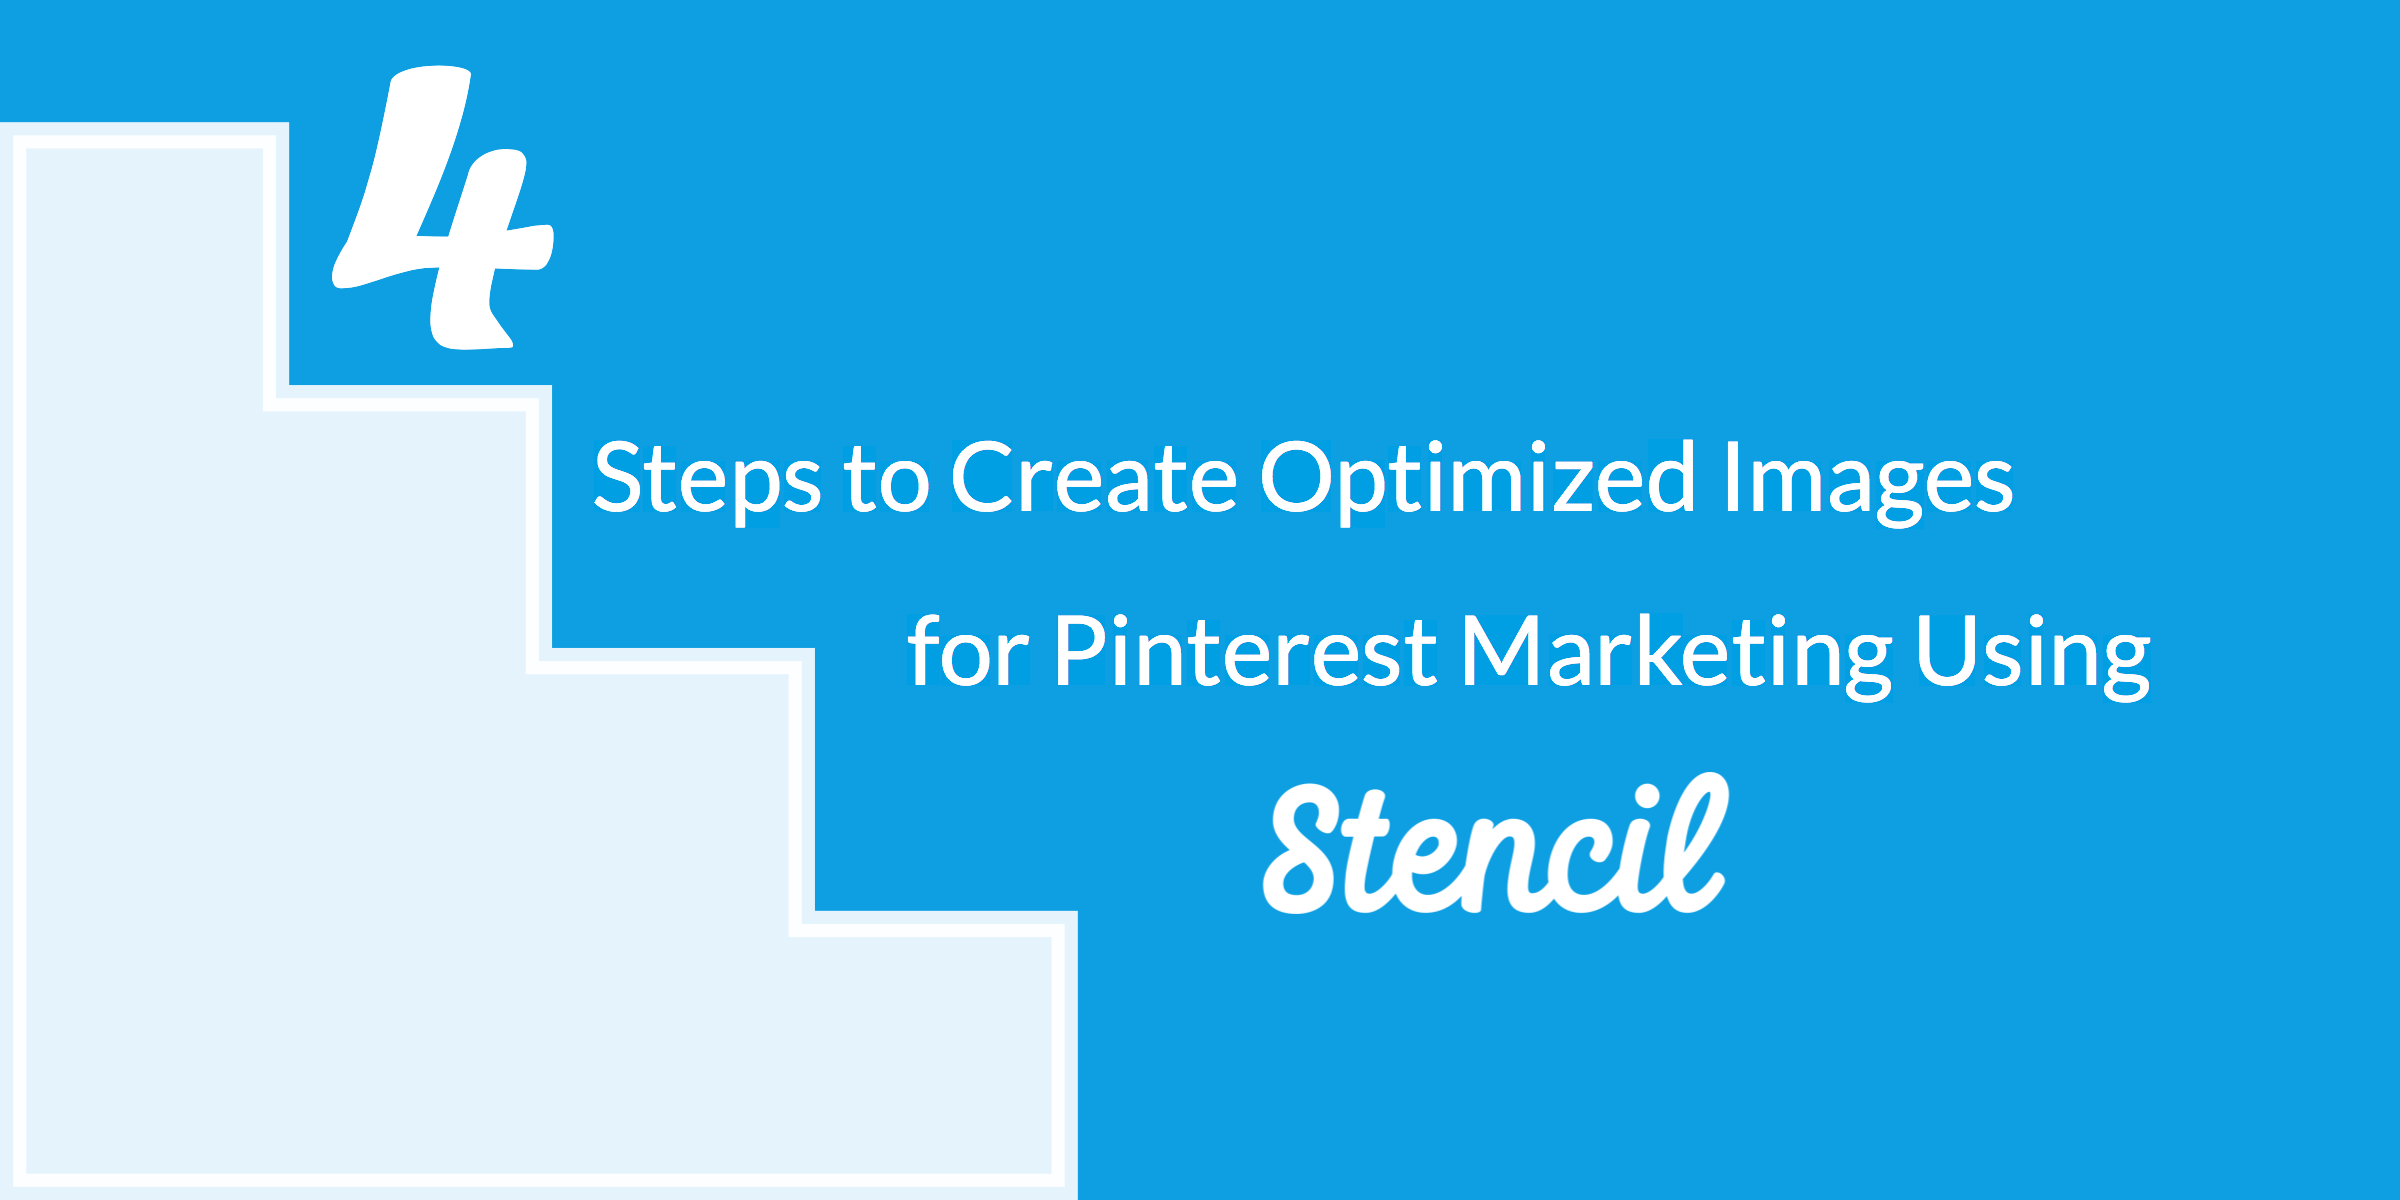 4 Steps to Create Optimized Images for Pinterest Marketing Using Stencil